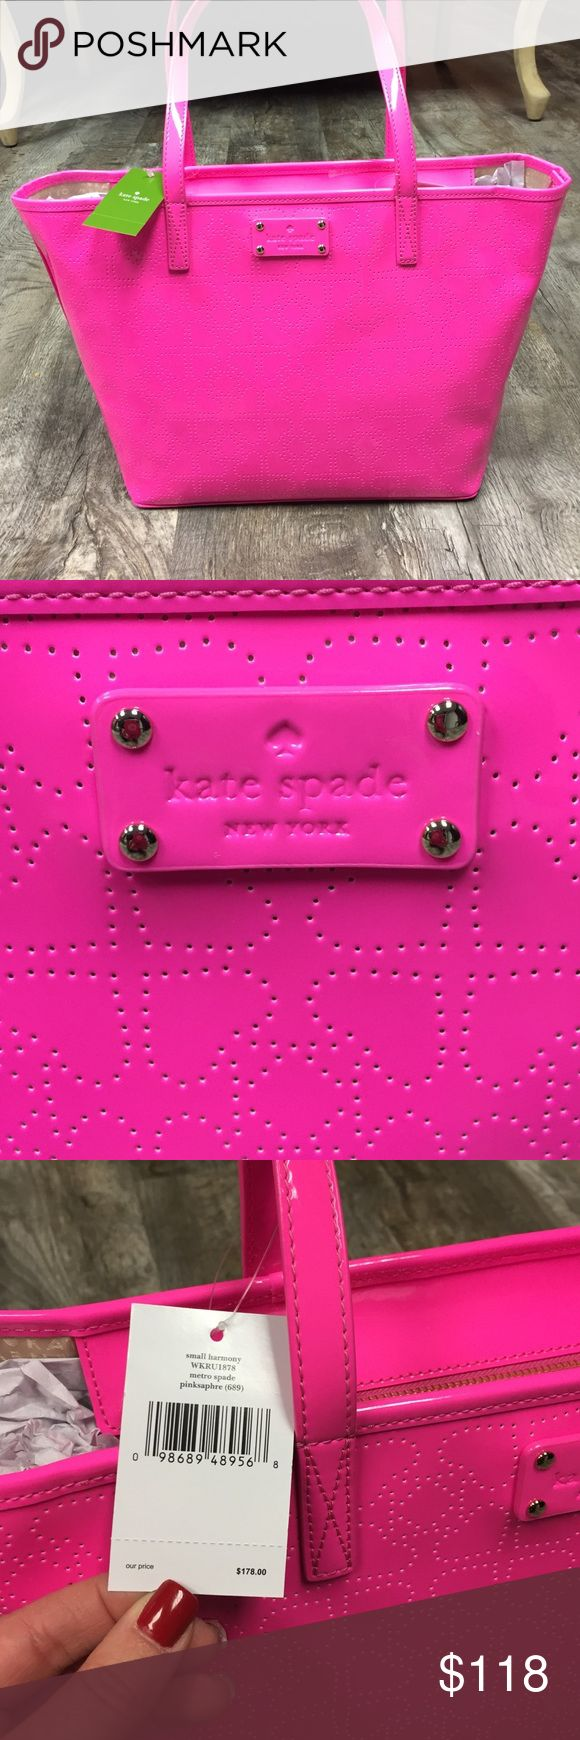 Kate spade hot pink harmony bag nwt handbag purse Kate spade hot pink heat bag nwt handbag purse. This bag is soooooo cute hot pink with patent material with spade design . Larger tore with zipper closure the color is pink sapphire. Made of PVC fabric. Approx. 17″ x 9″ x 6″. Take this high-style kate spade new york Kate Spade New York Metro Spade Small Harmony Tote (Pink Sapphire) home. Brand new with tags retail 178 kate spade Bags